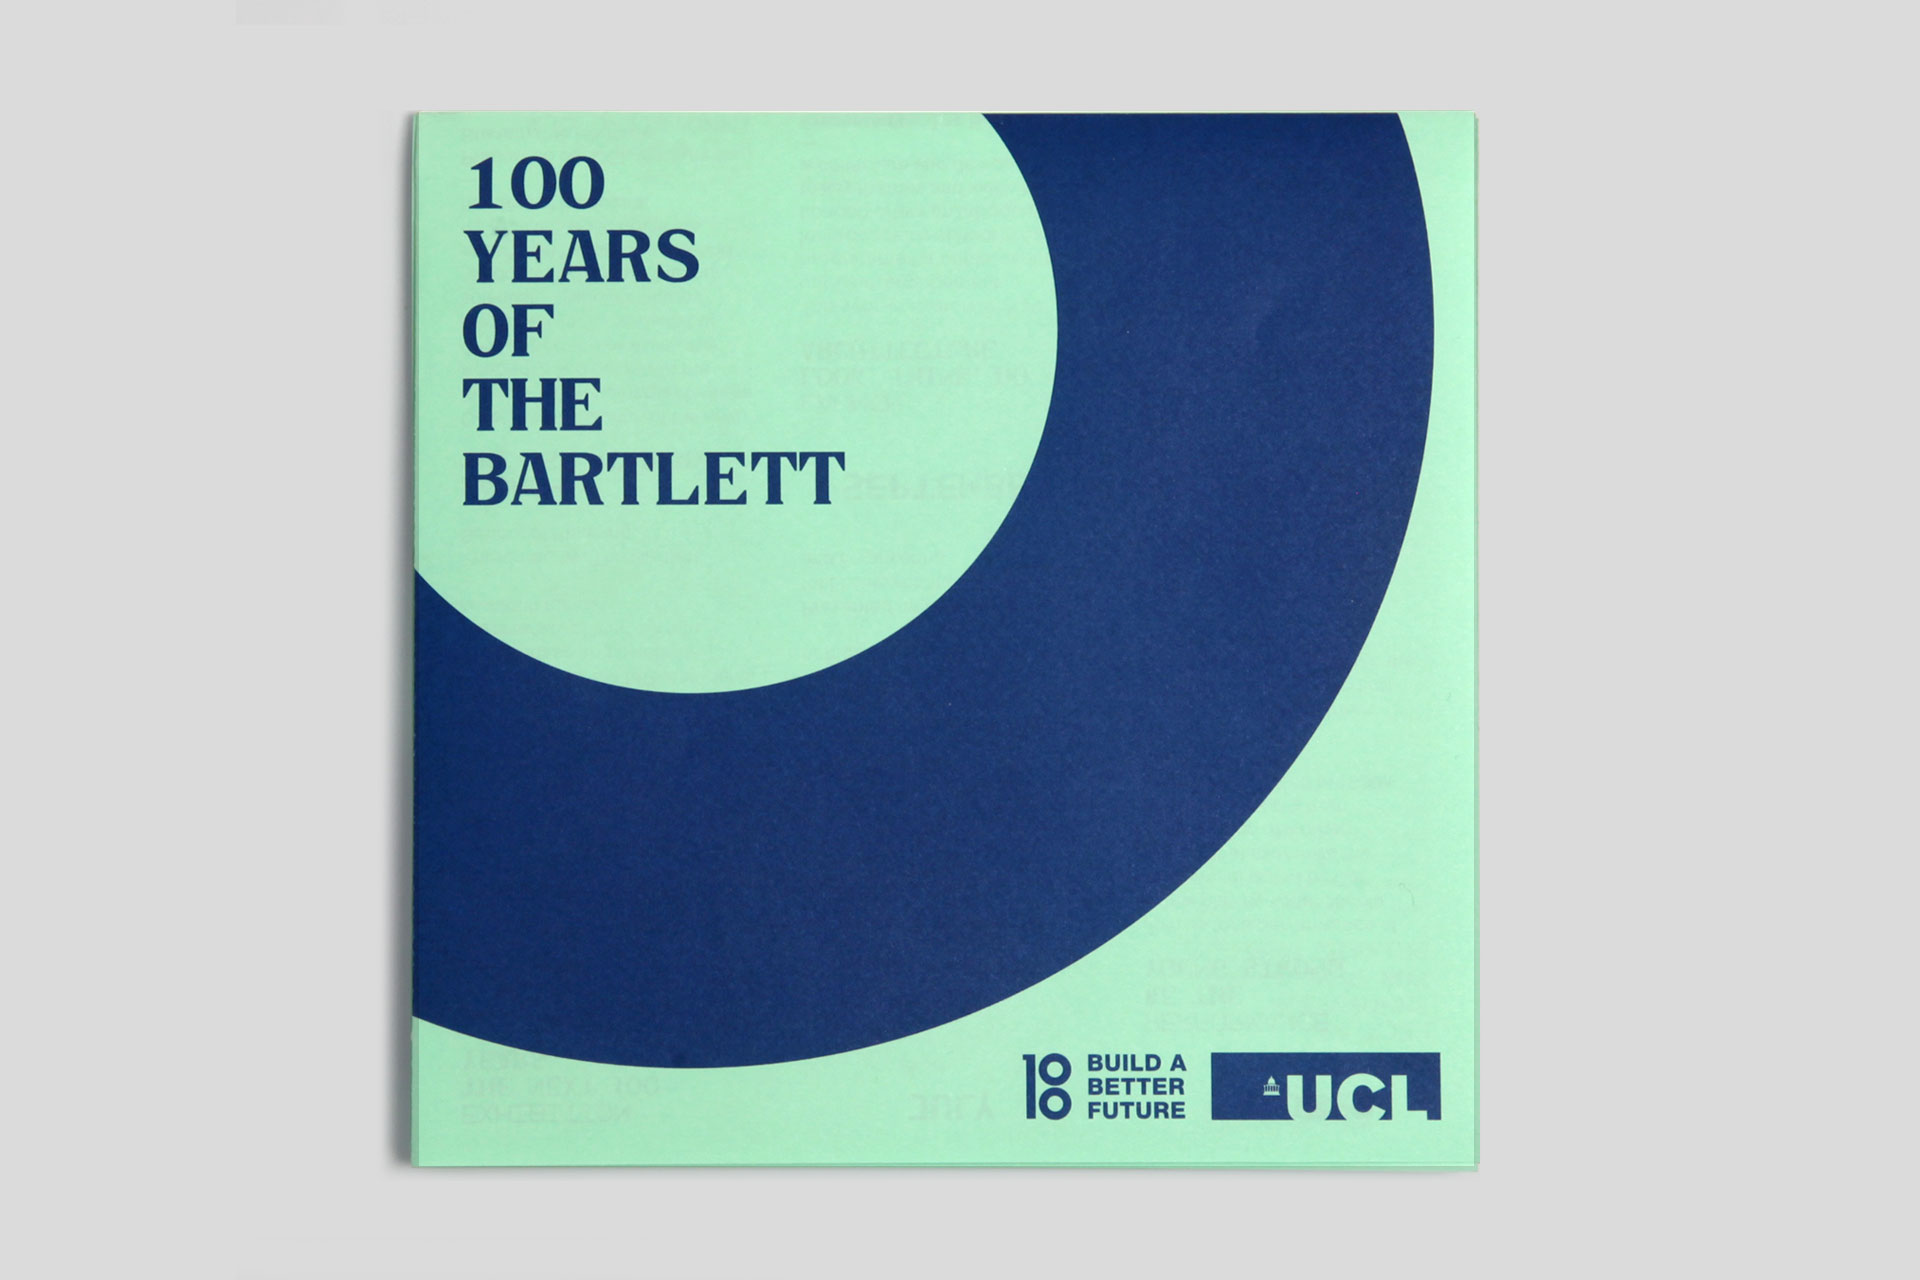 The Bartlett Centenary campaign 16